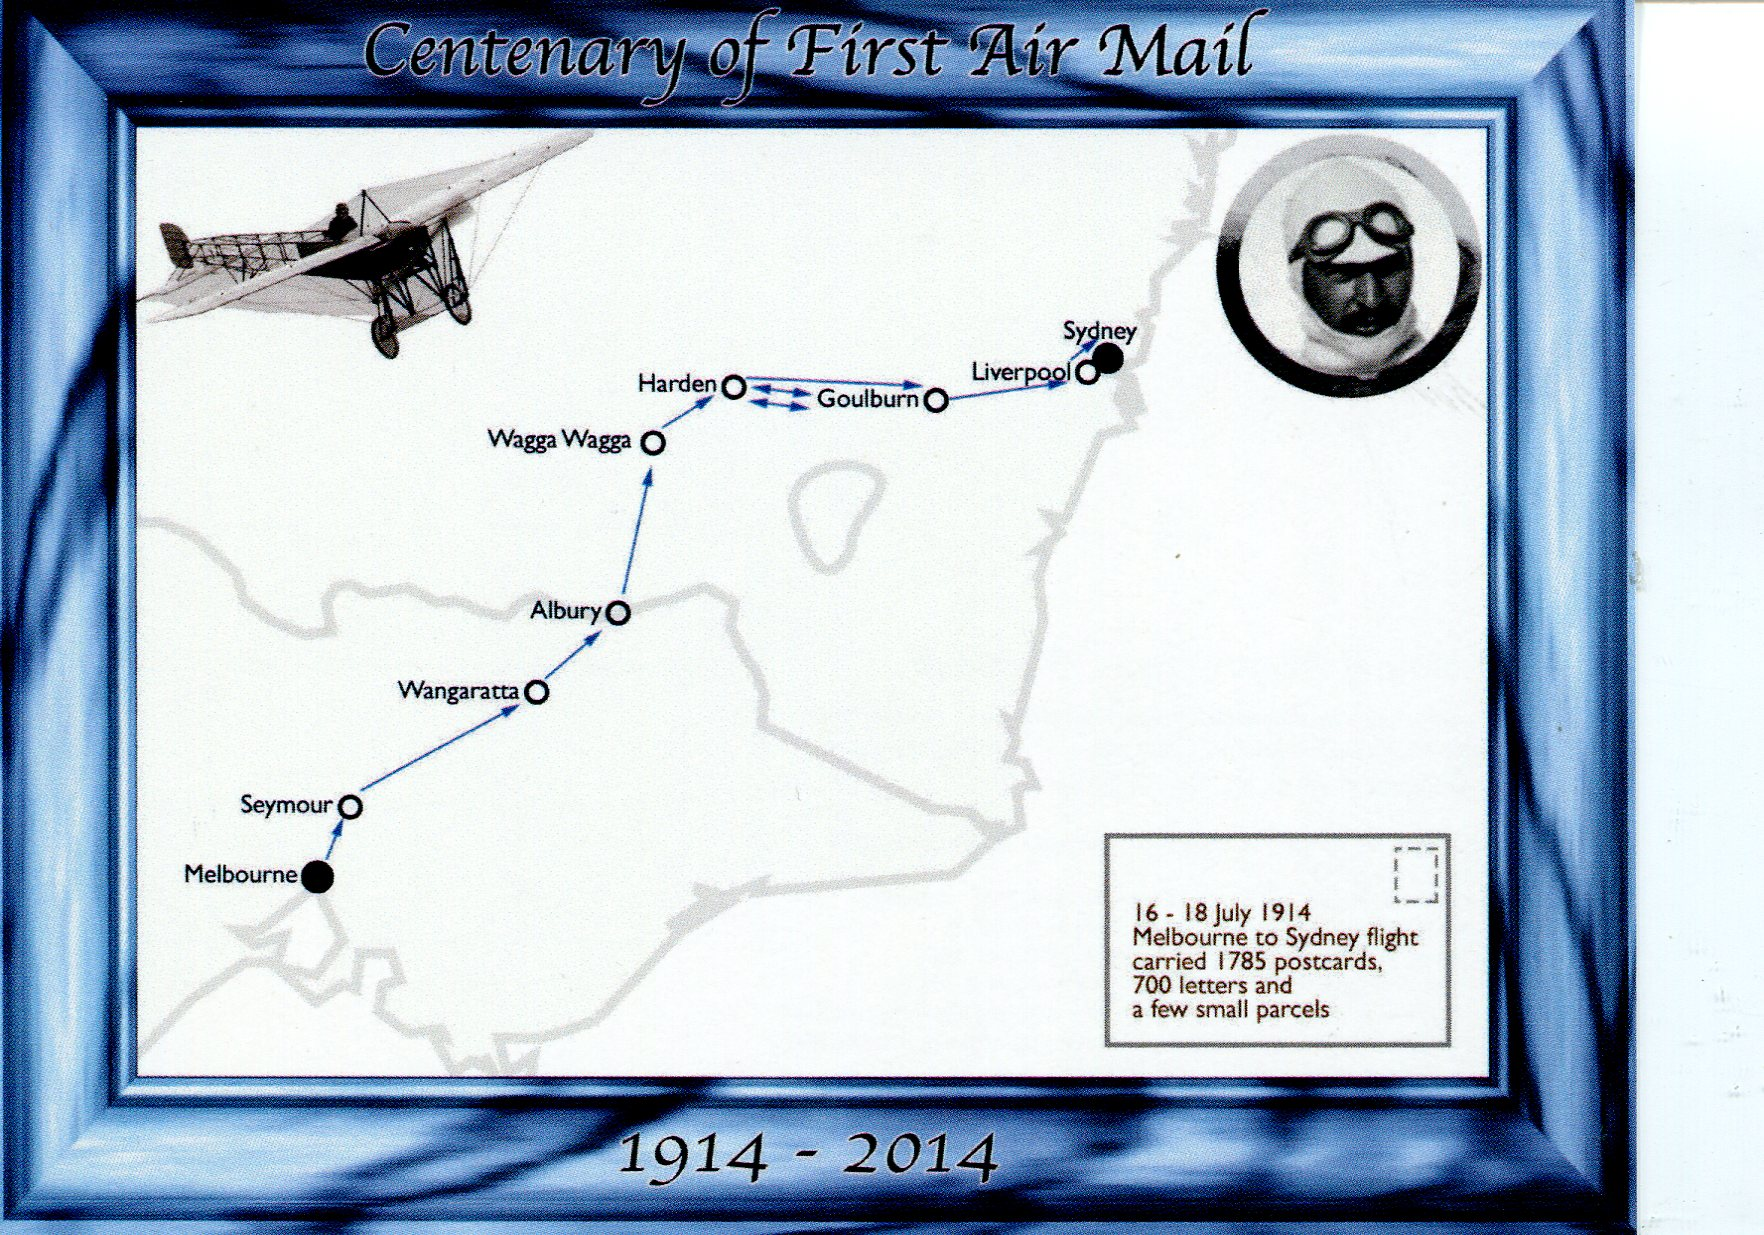 Centenary of First Air Mail (Australia)